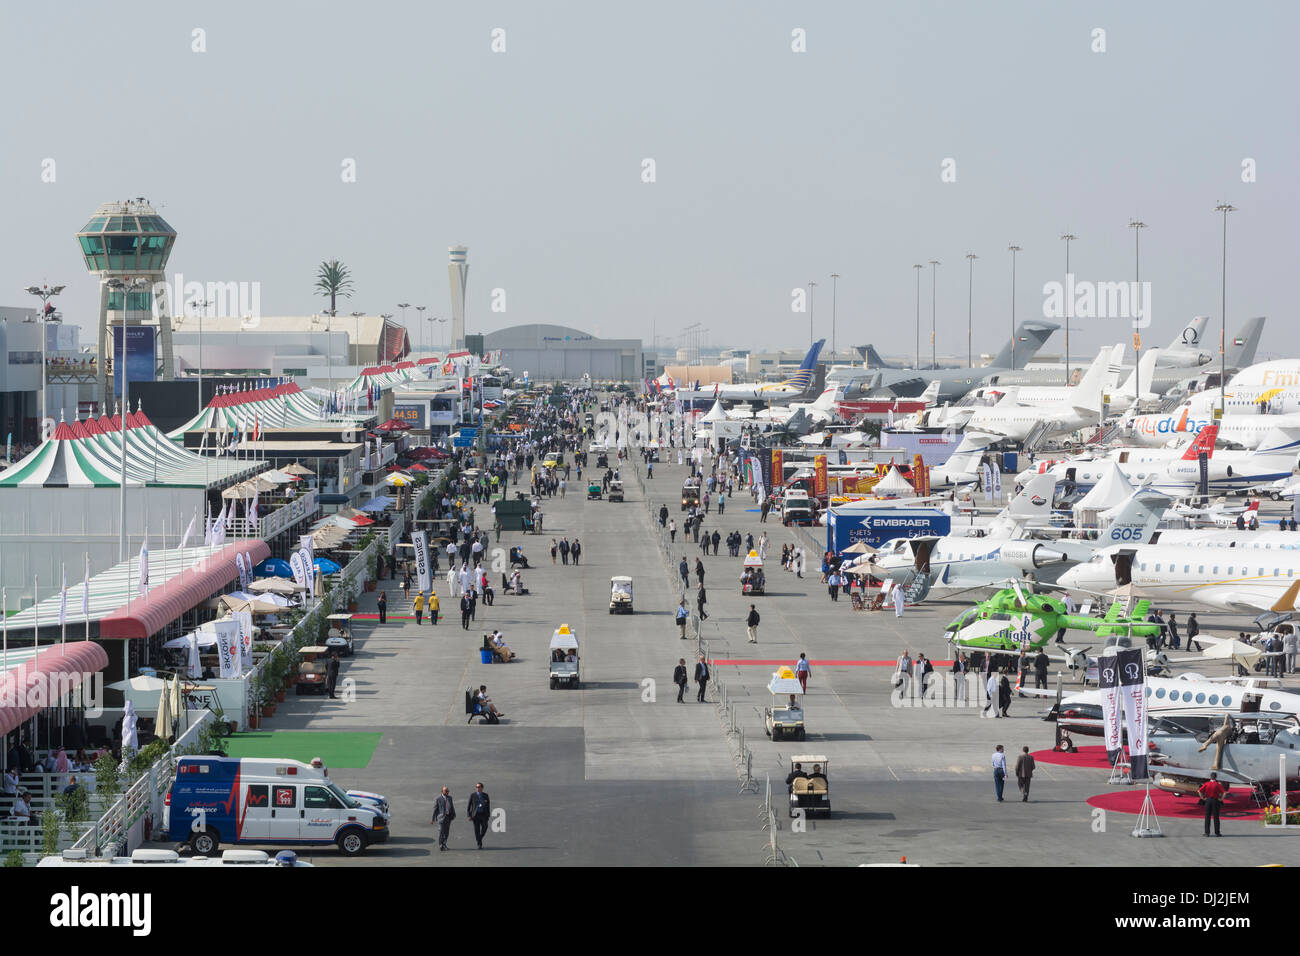 Many aircraft on apron at Al Maktoum International airport during Dubai Airshow 2013 in United Arab Emirates - Stock Image